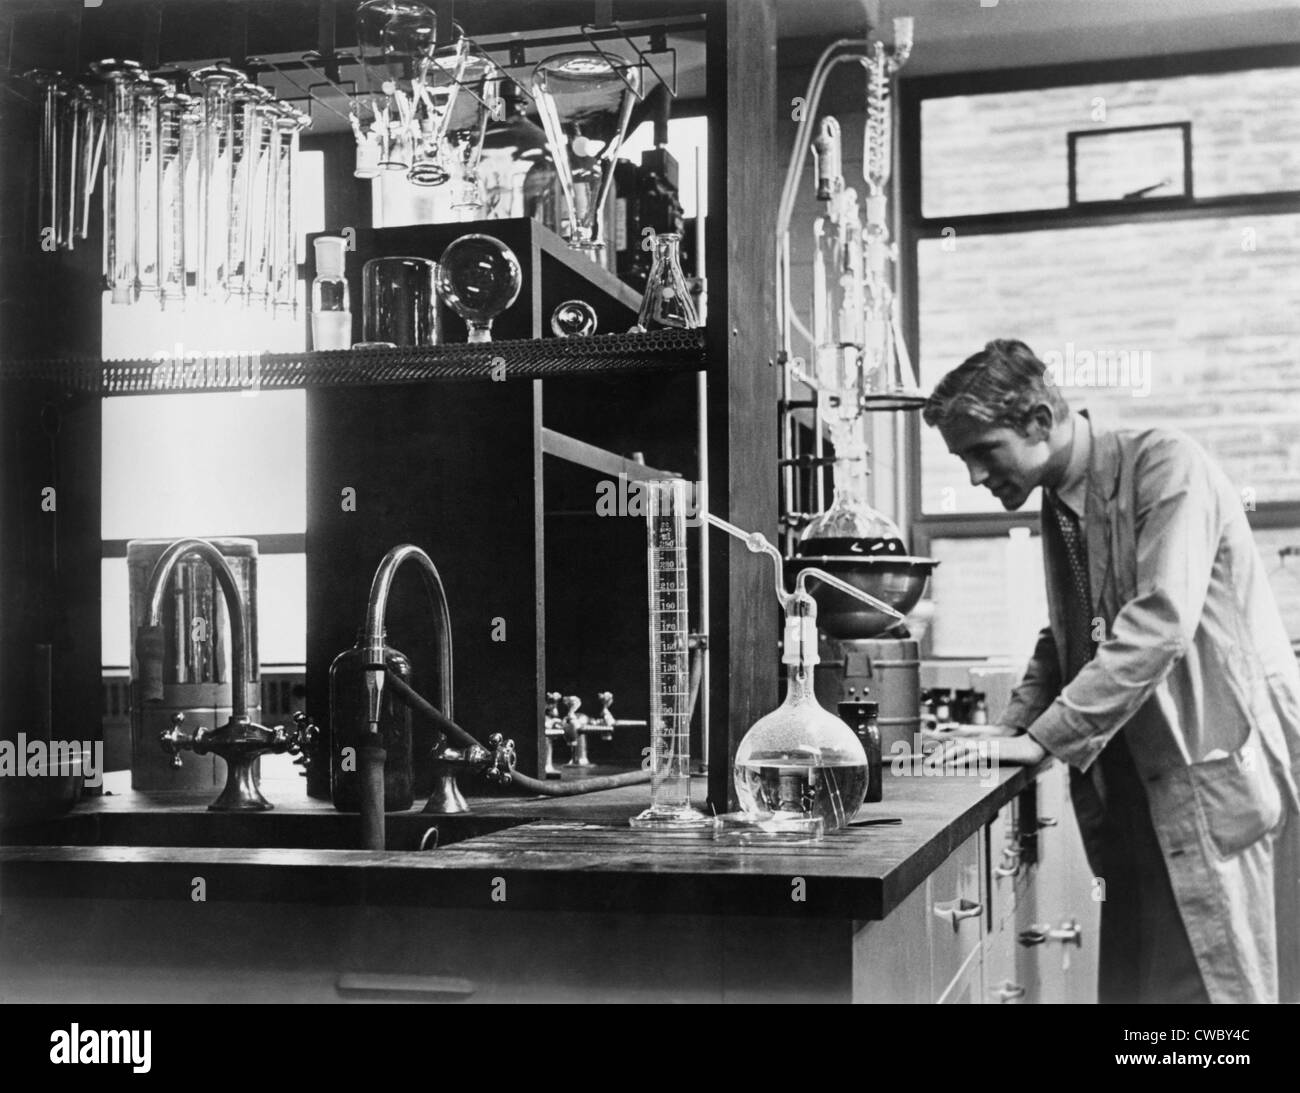 Scientist conducting a laboratory experiment in a cancer research facility in the United States, 1951. - Stock Image